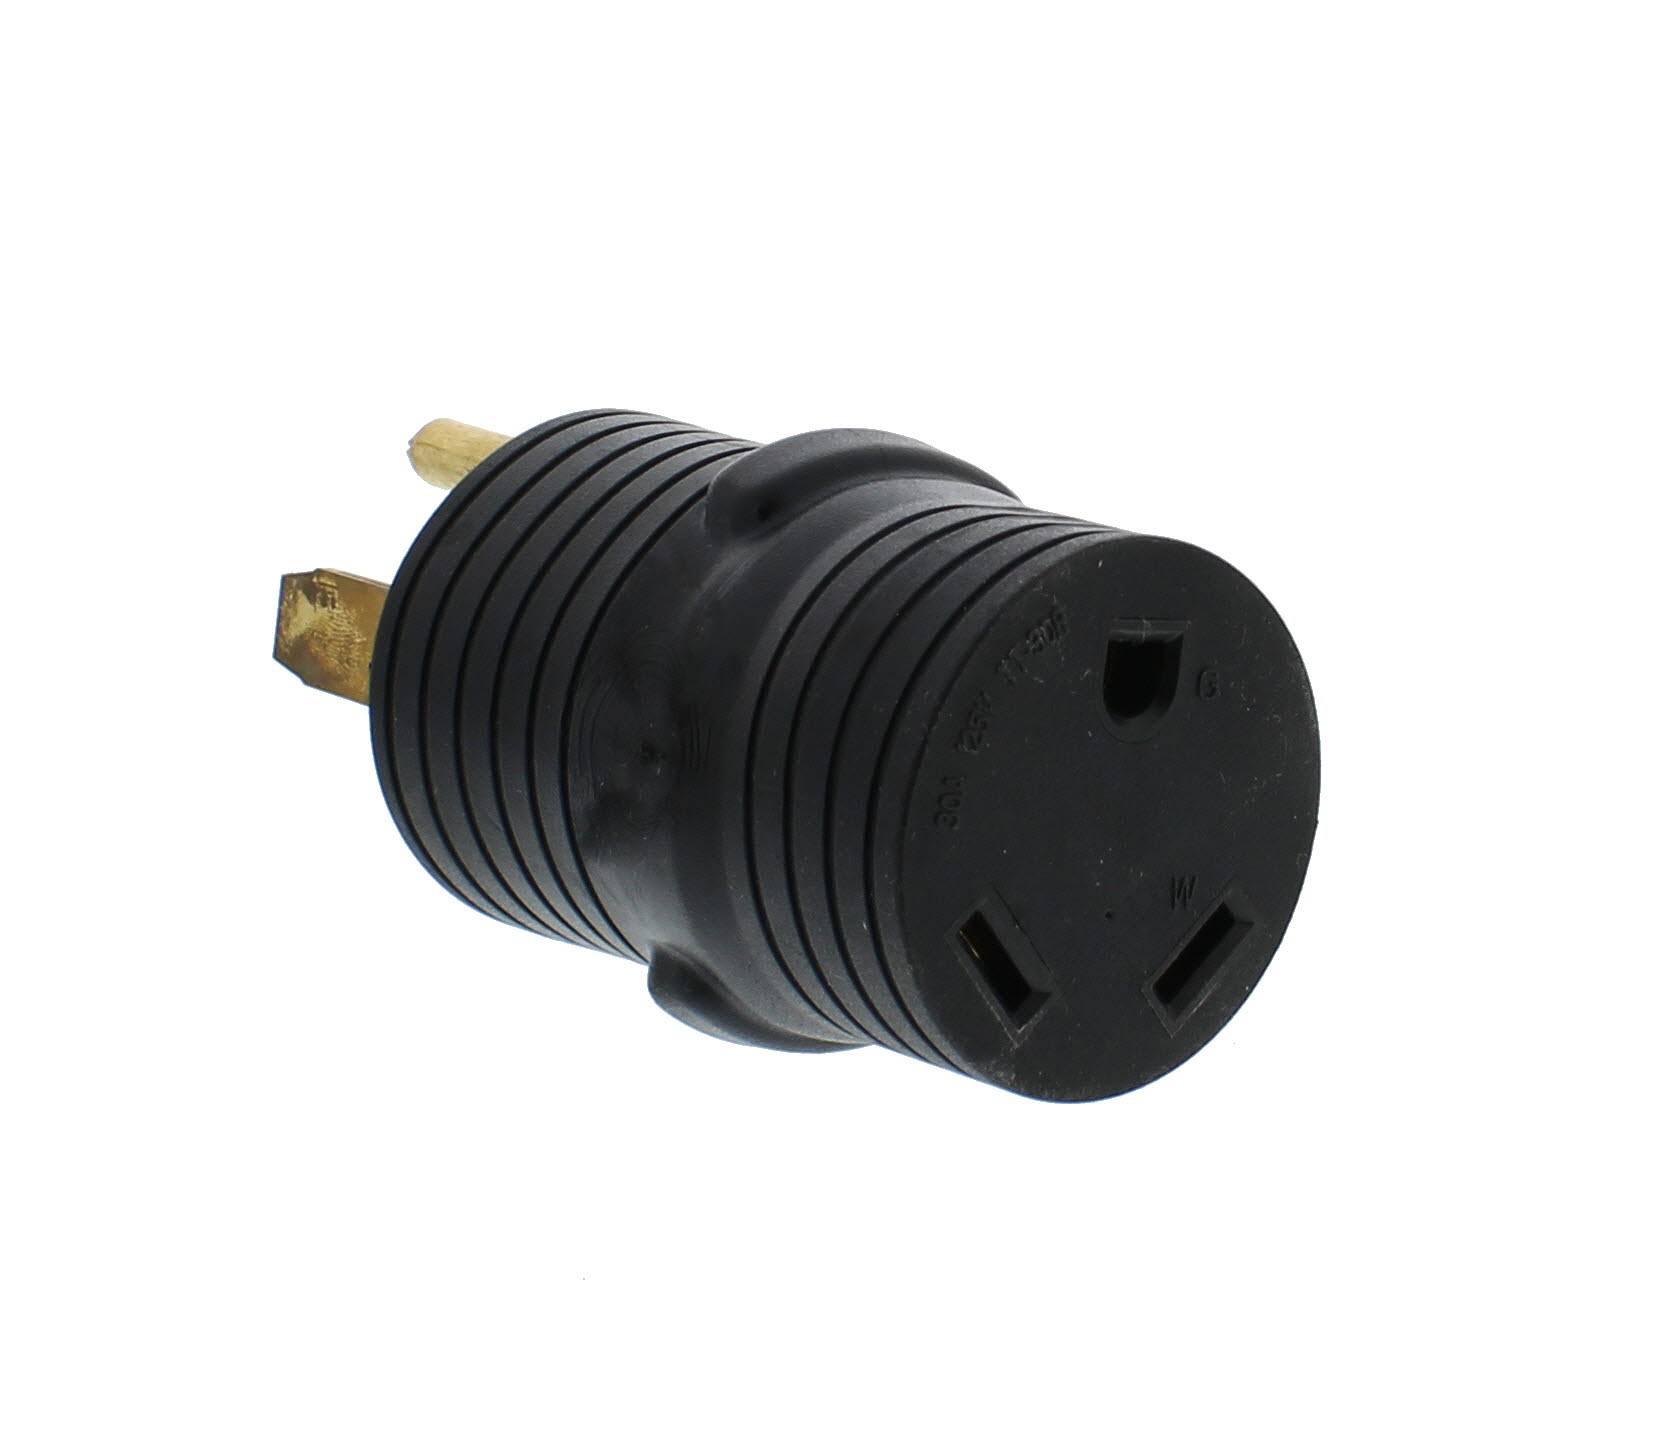 Dumble Plug Adapter 50A Male to 30A Female 4 Prong RV Generator Power Converter